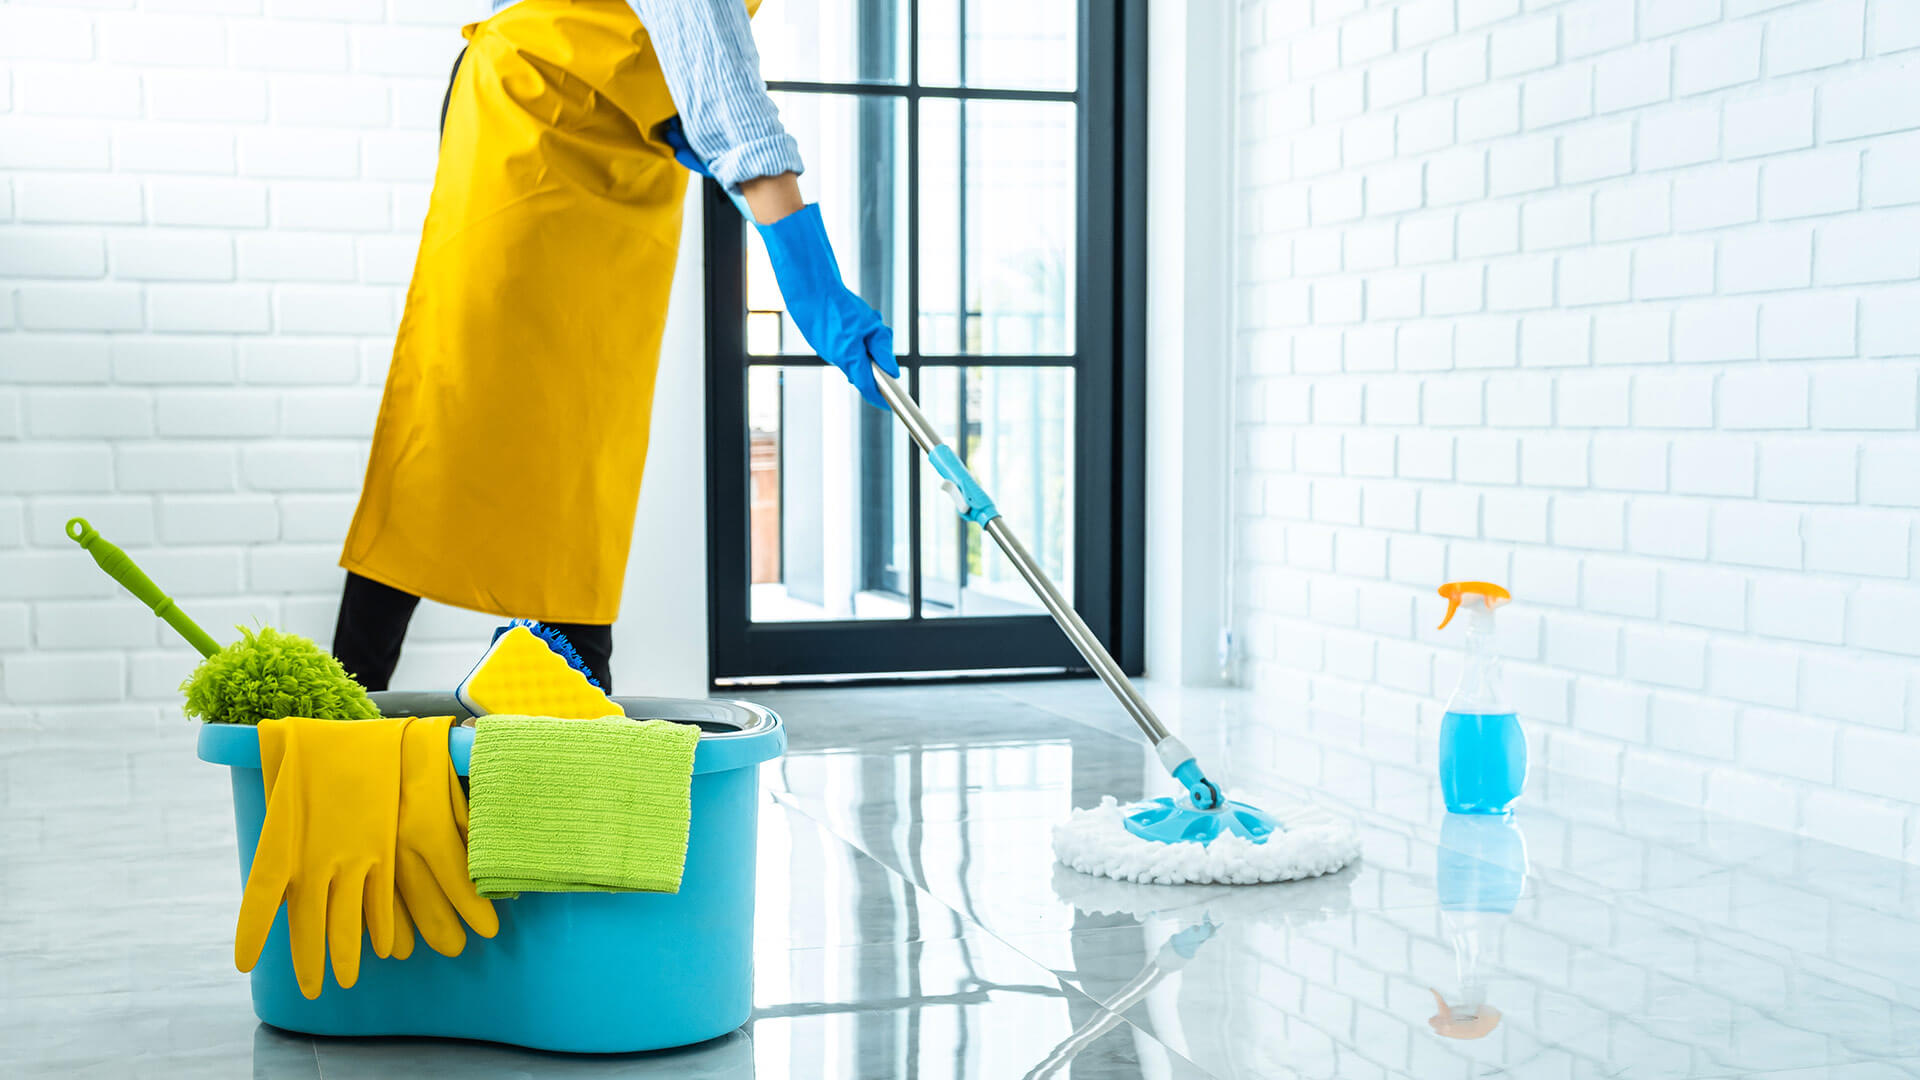 Safe and healthy service from the cleaning company (societe de nettoyage)